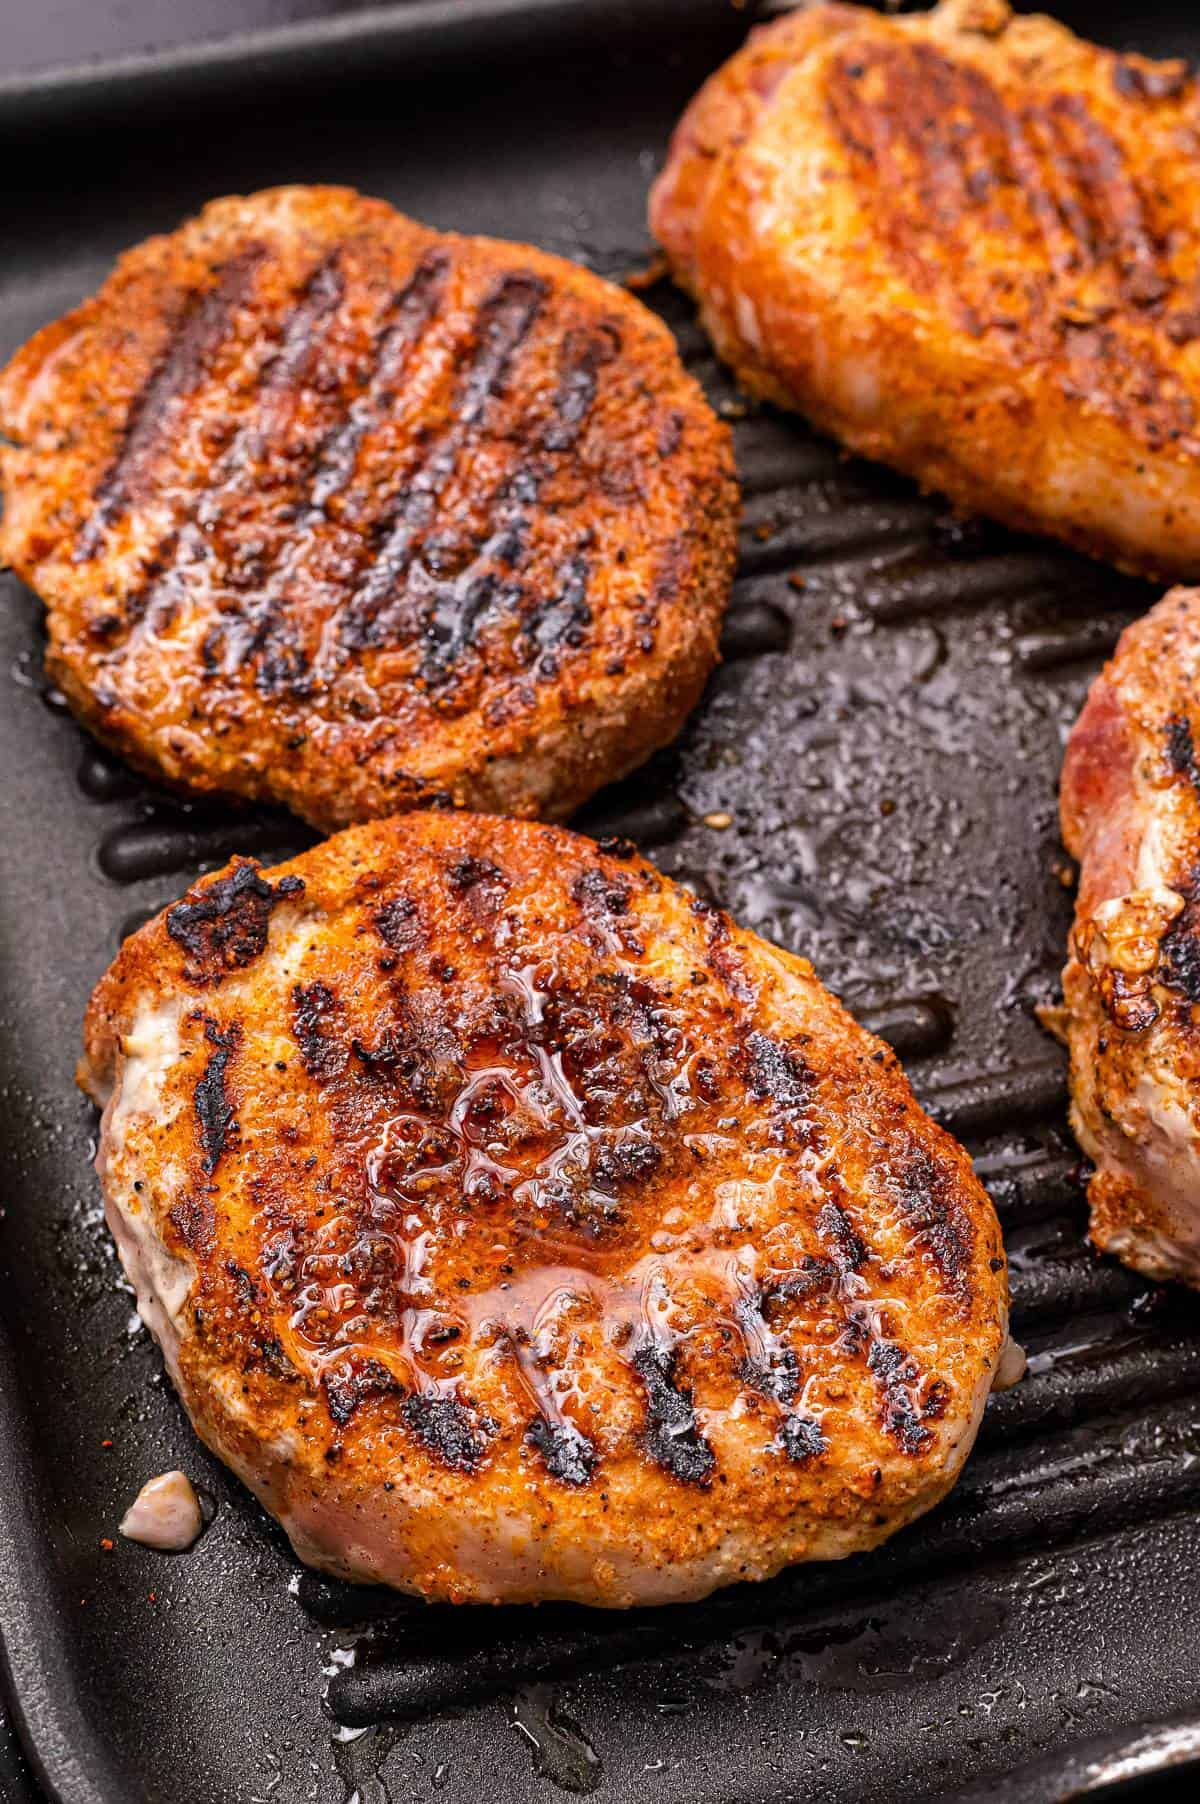 A grill pan with seasoned pork chops on it